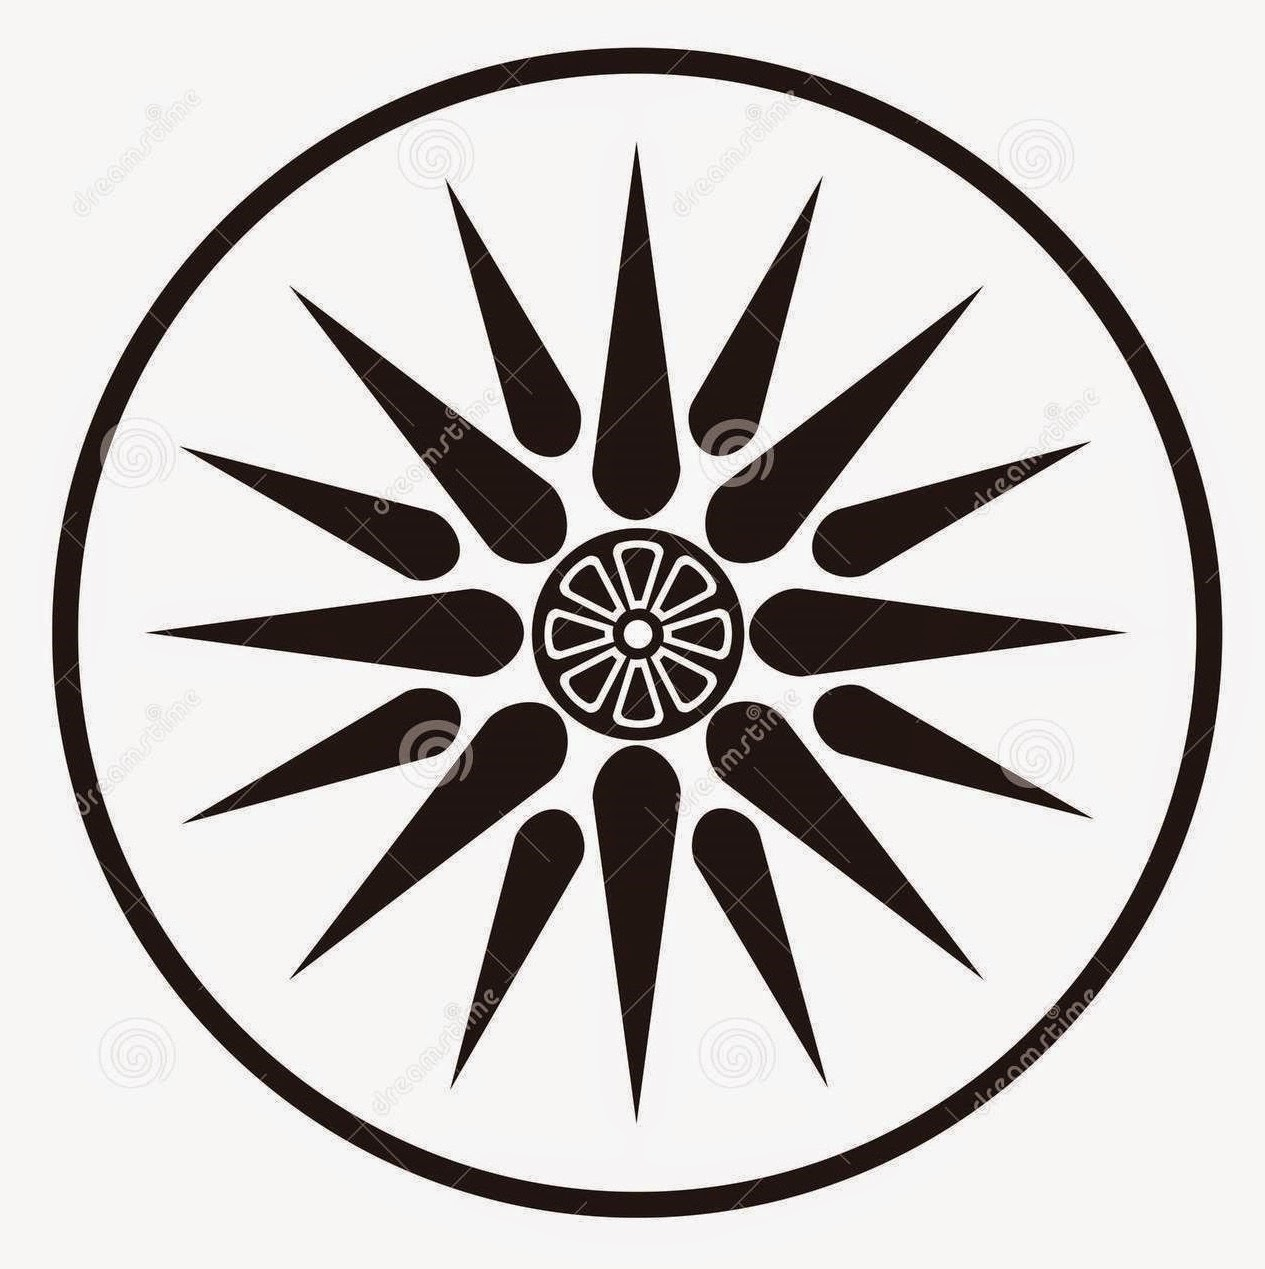 apollo god of the sun symbol wwwpixsharkcom images